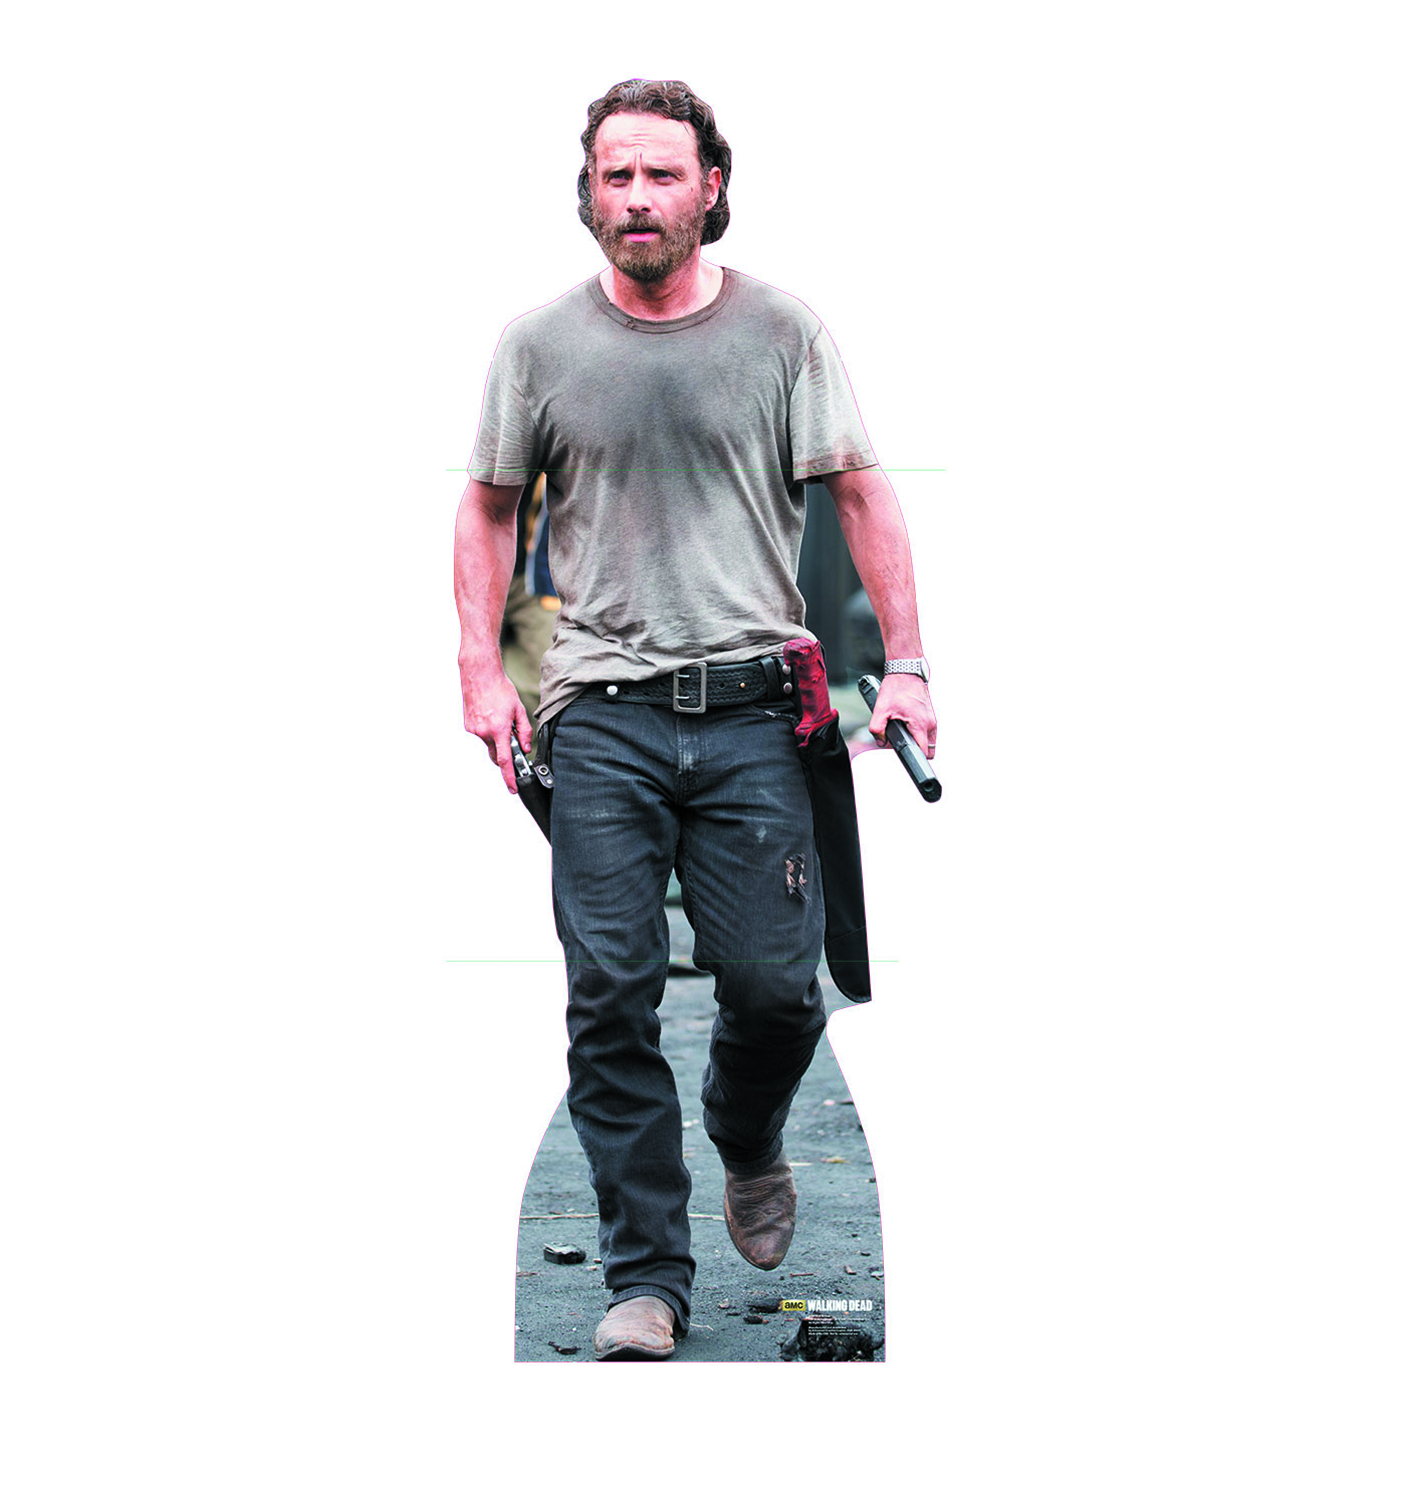 WALKING DEAD RICK GRIMES LIFE-SIZE STANDUP